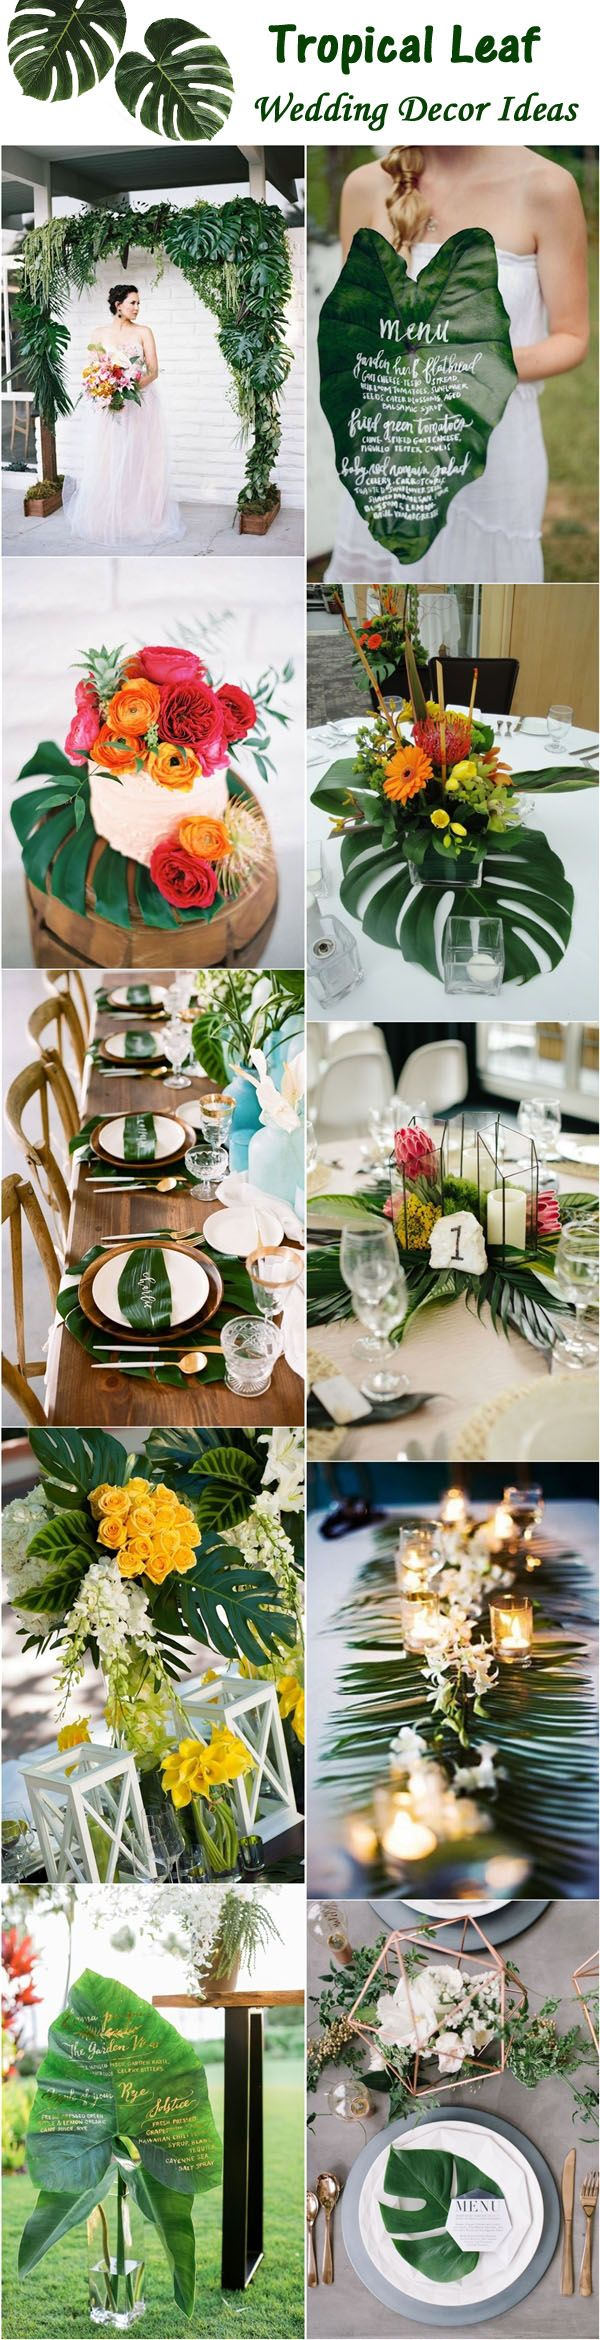 Tropical Leaf Green Wedding Ideas / http://www.deerpearlflowers.com/tropical-leaf-greenery-wedding-decor-ideas/